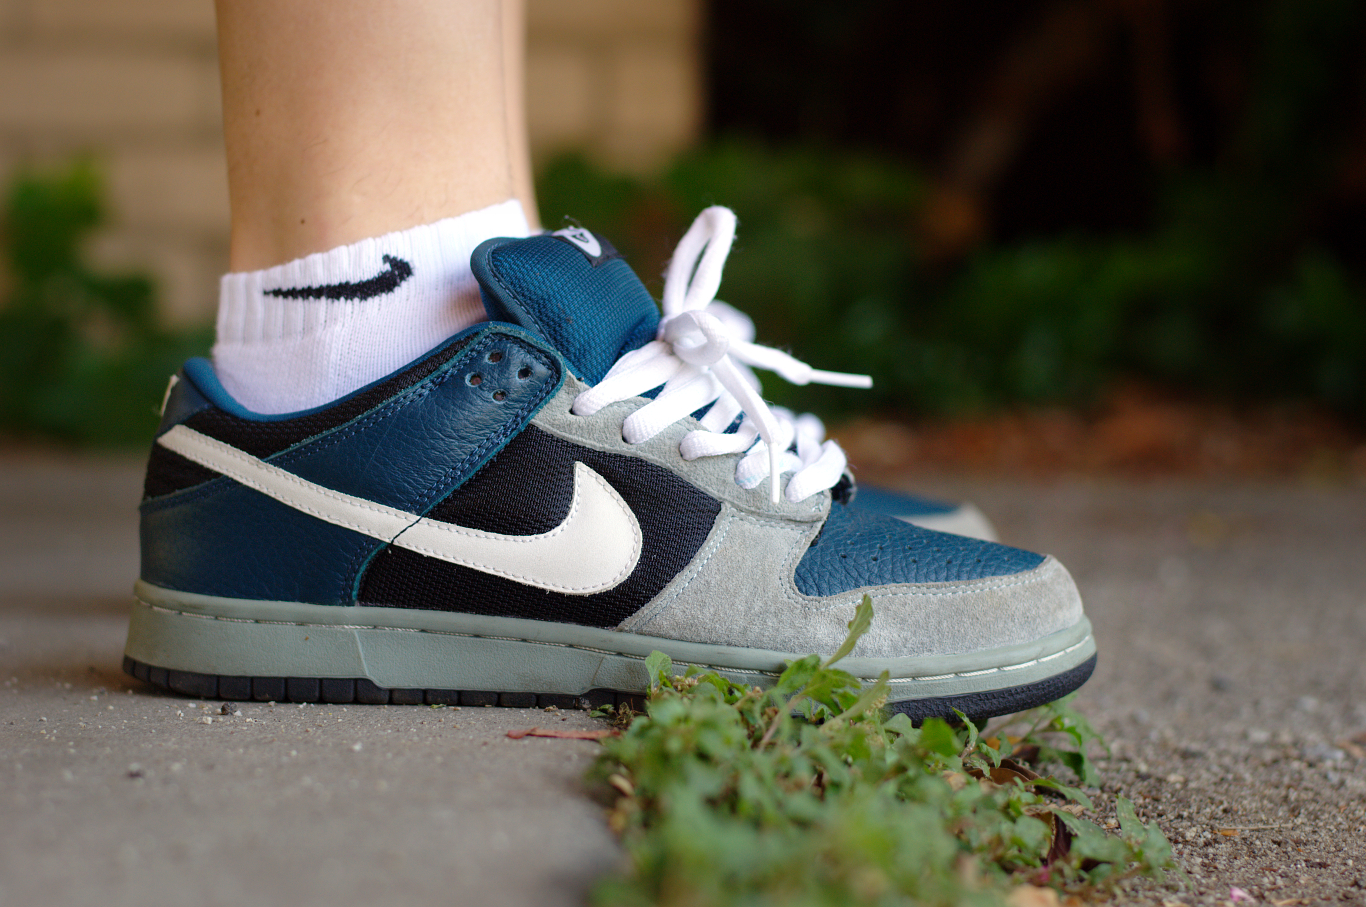 info for 51774 0a14a ... coupon code verse001 in the futura x nike sb dunk low. fb379 d6db8